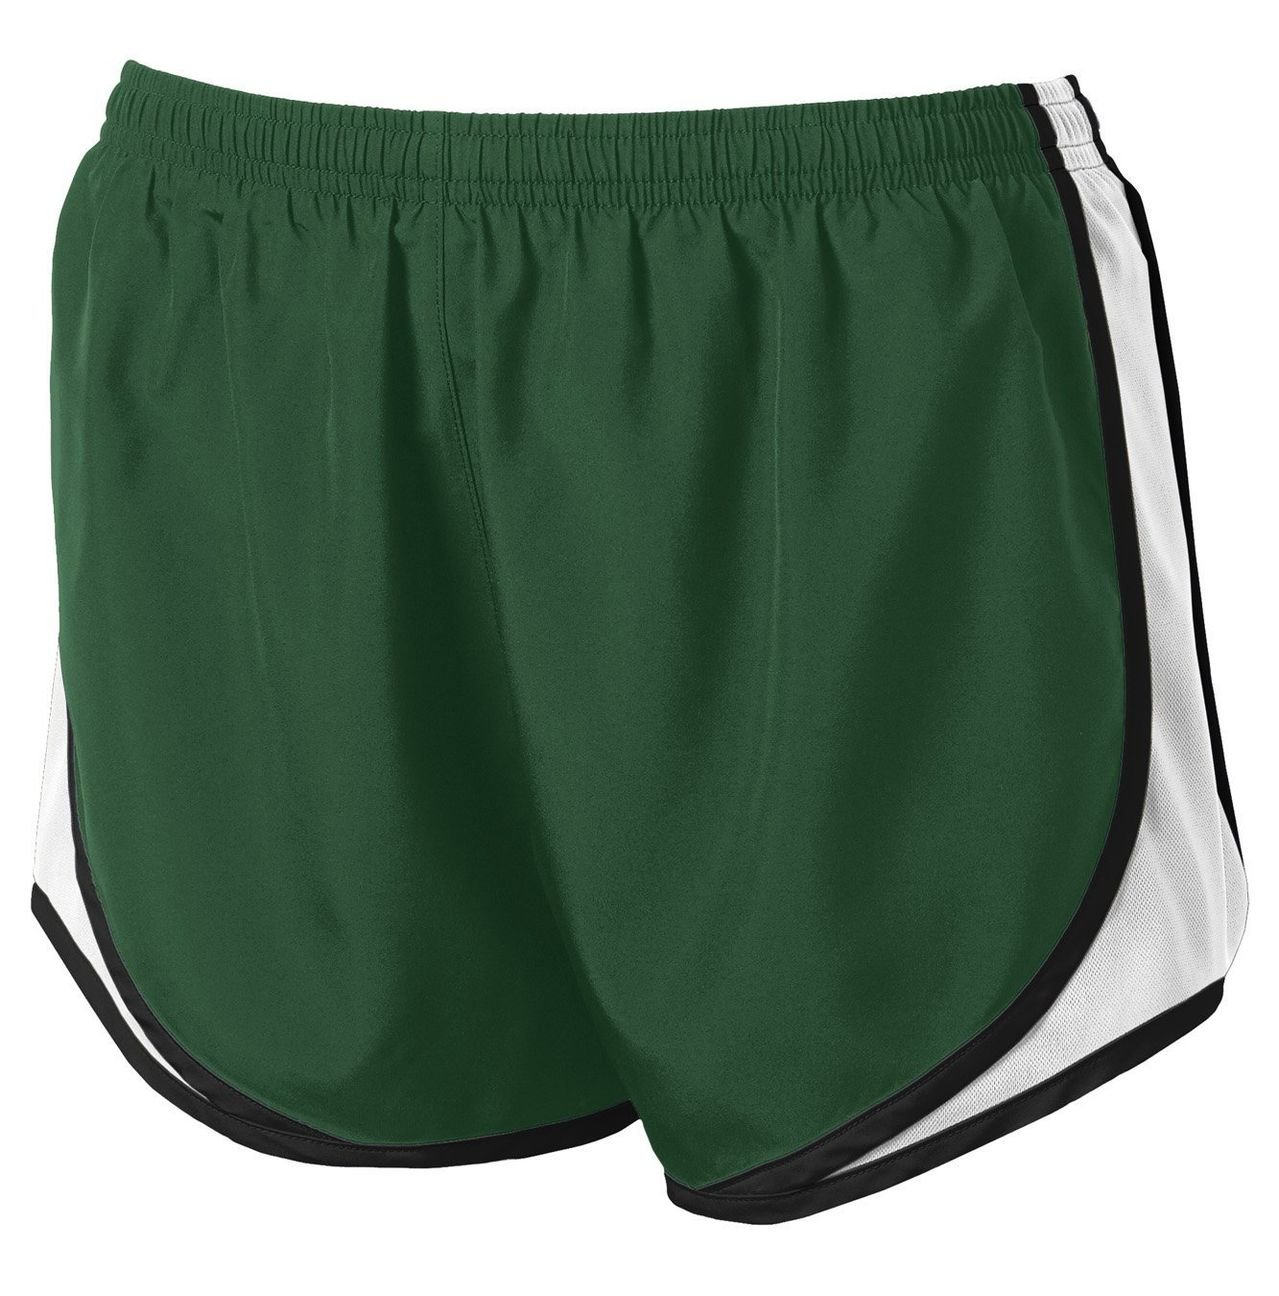 Clothe Co. Ladies Moisture Wicking Sport Running Shorts, Forest Green/White/Black, XS by Clothe Co. (Image #1)